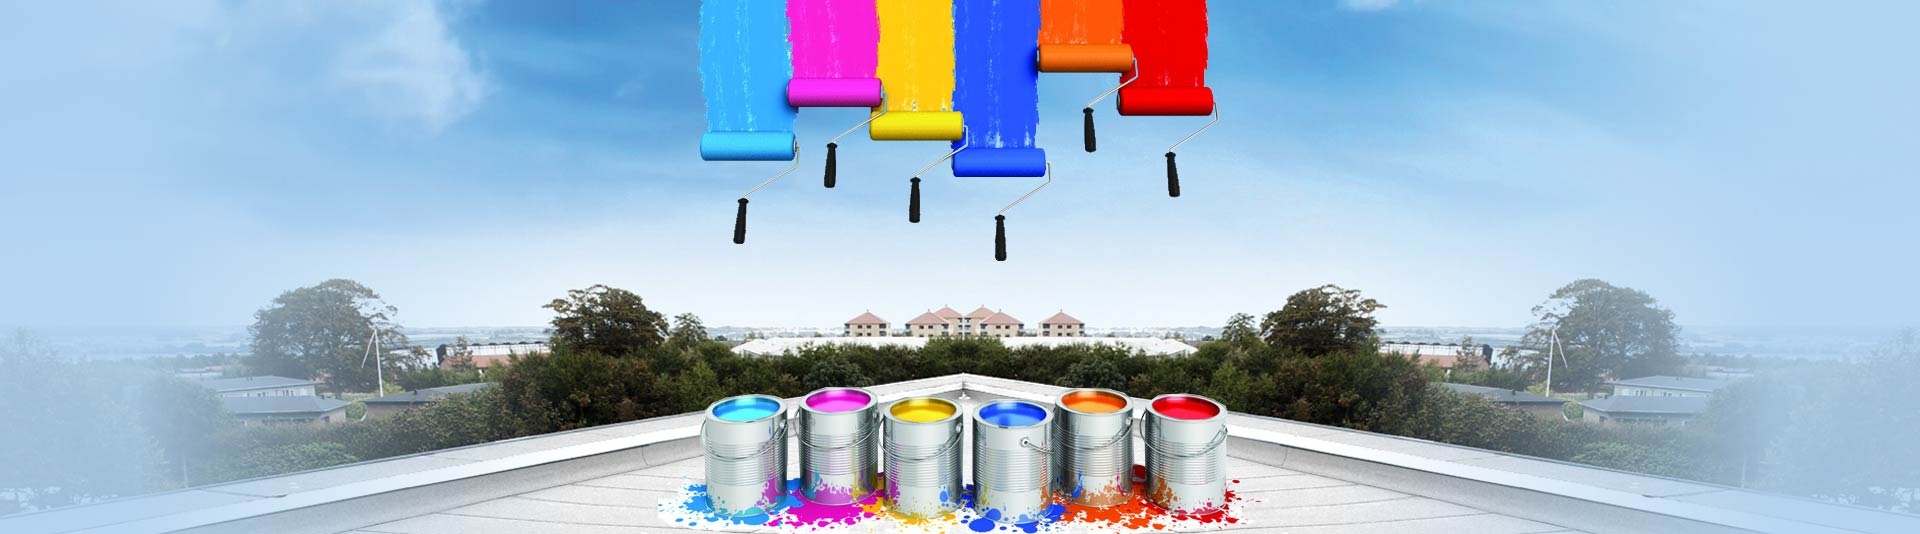 Application of coatings